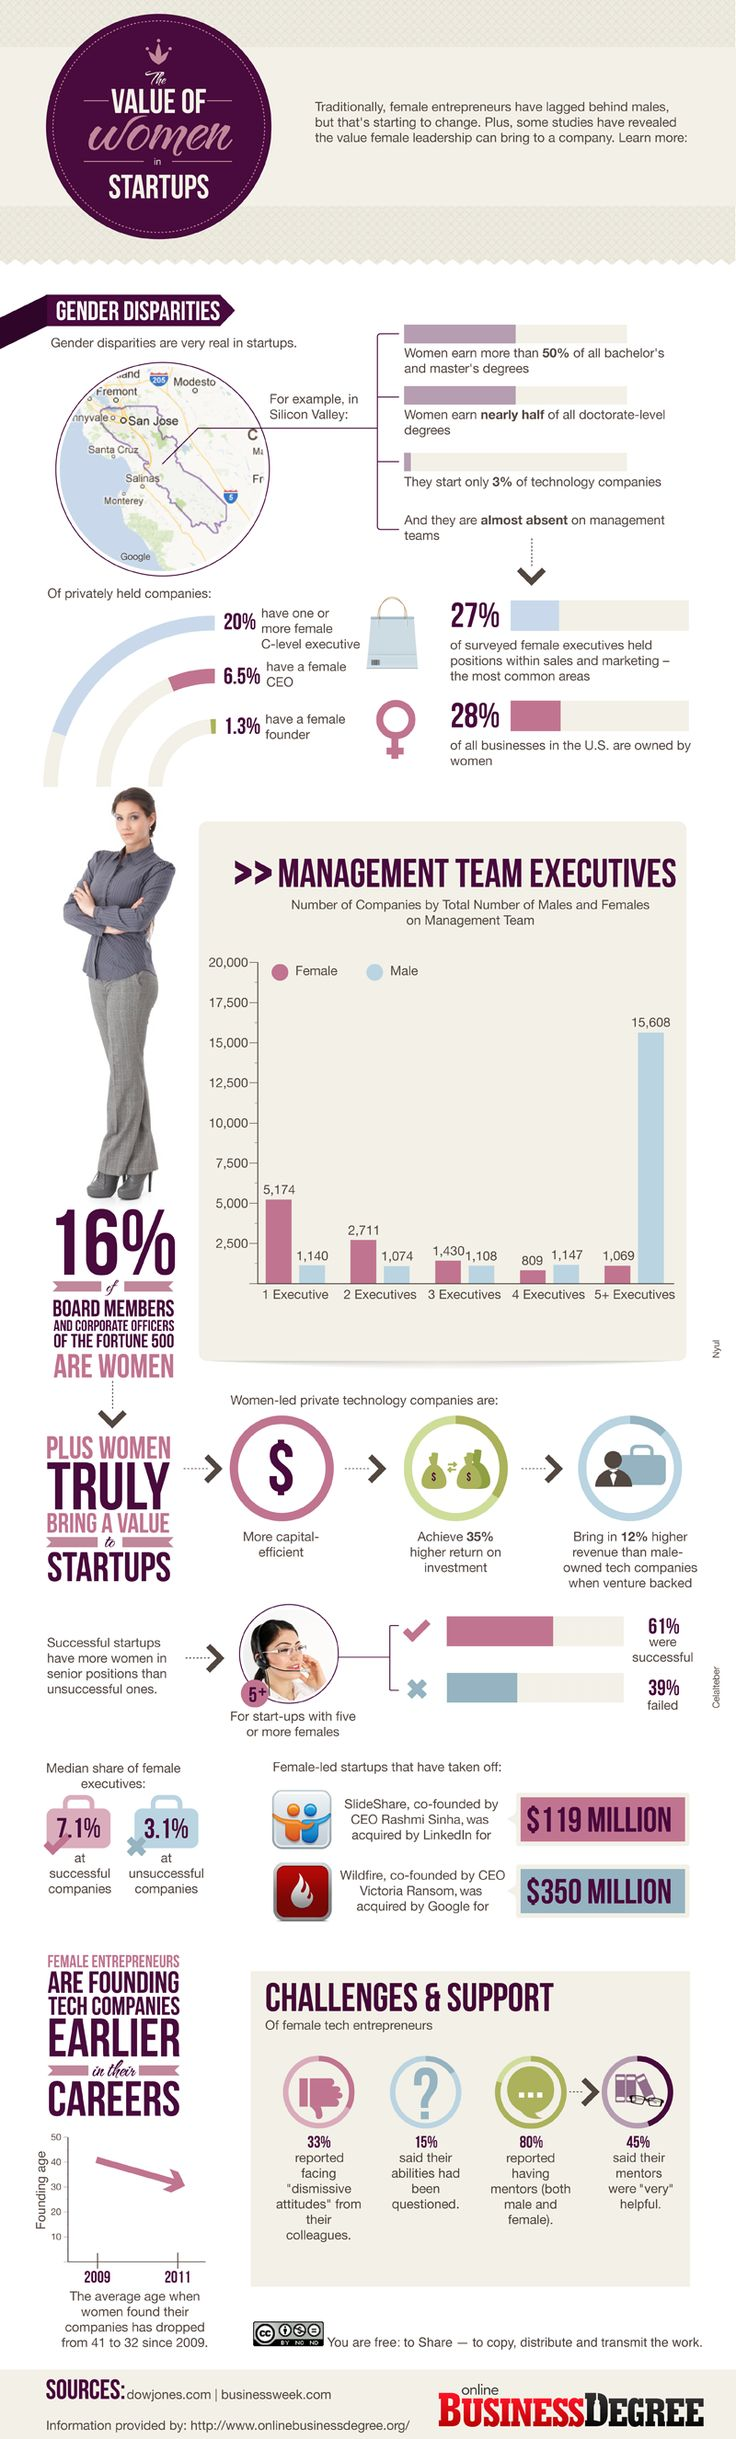 The Value of Women in Startups